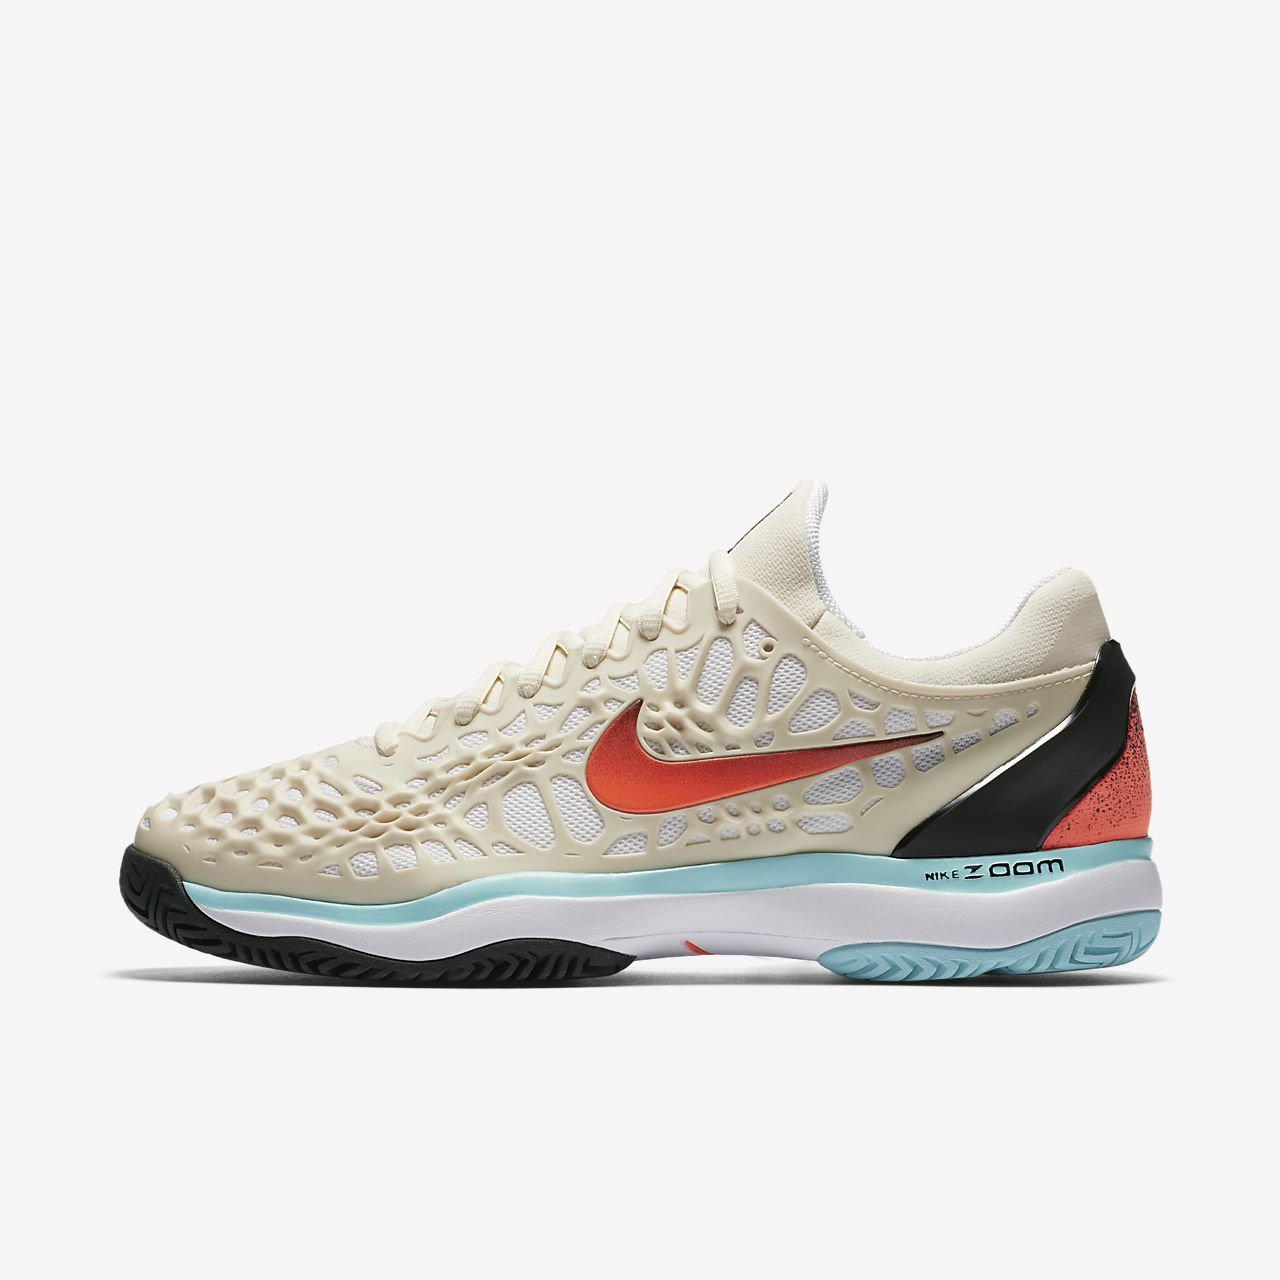 779027247362 Nike NikeCourt Zoom Cage 3 Hard Court Men s Tennis Shoe at £68.47 ...